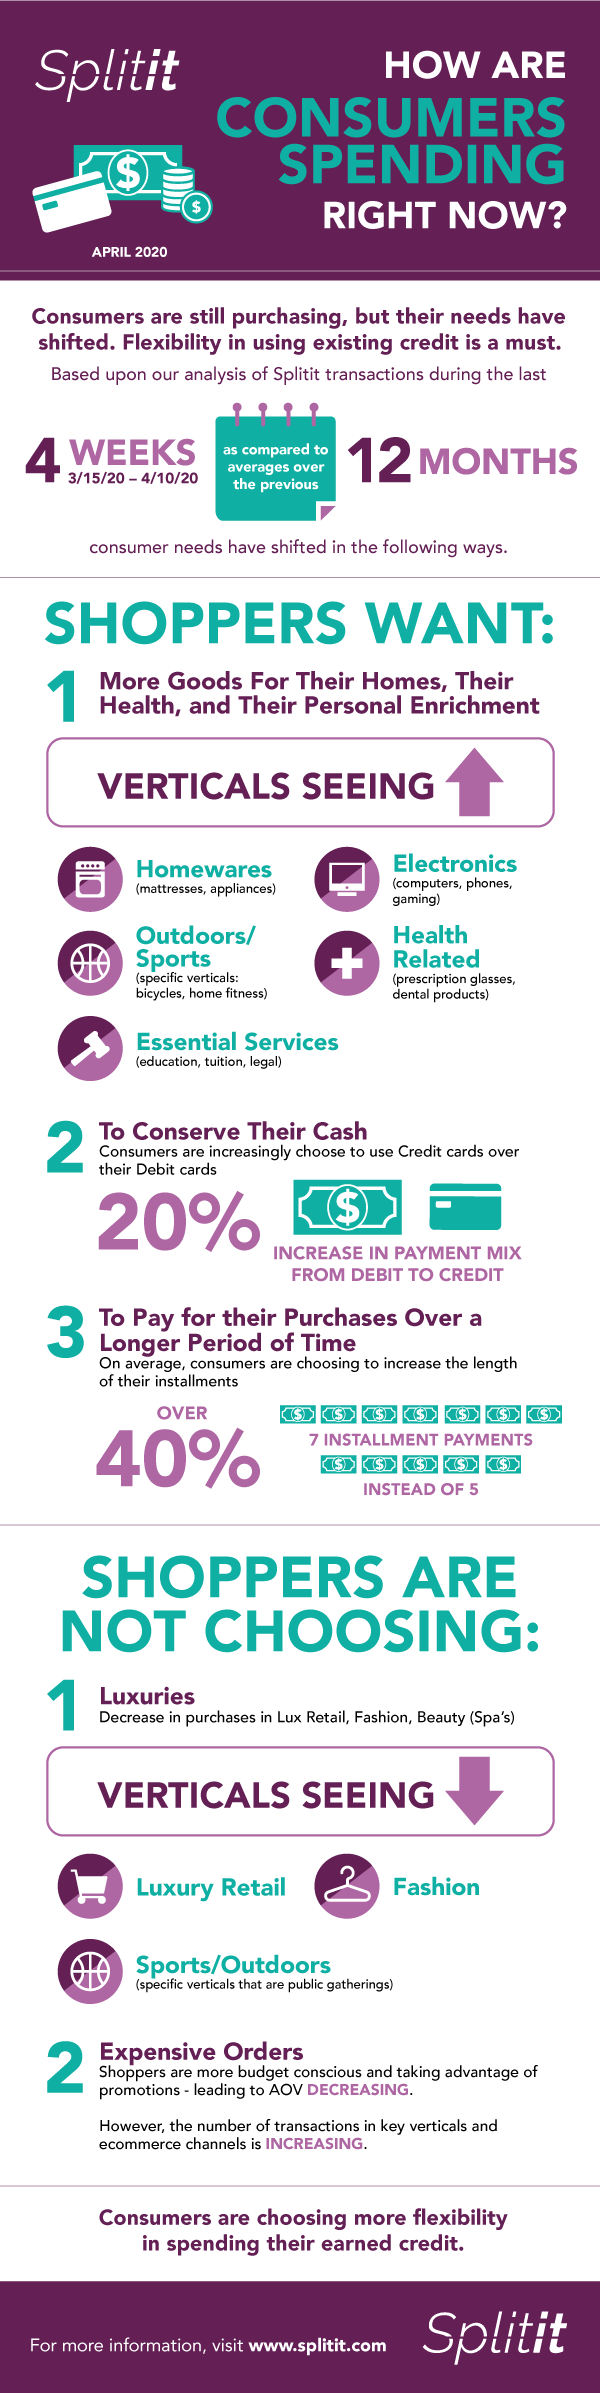 Infographic of Consumer Spending during COVID-19